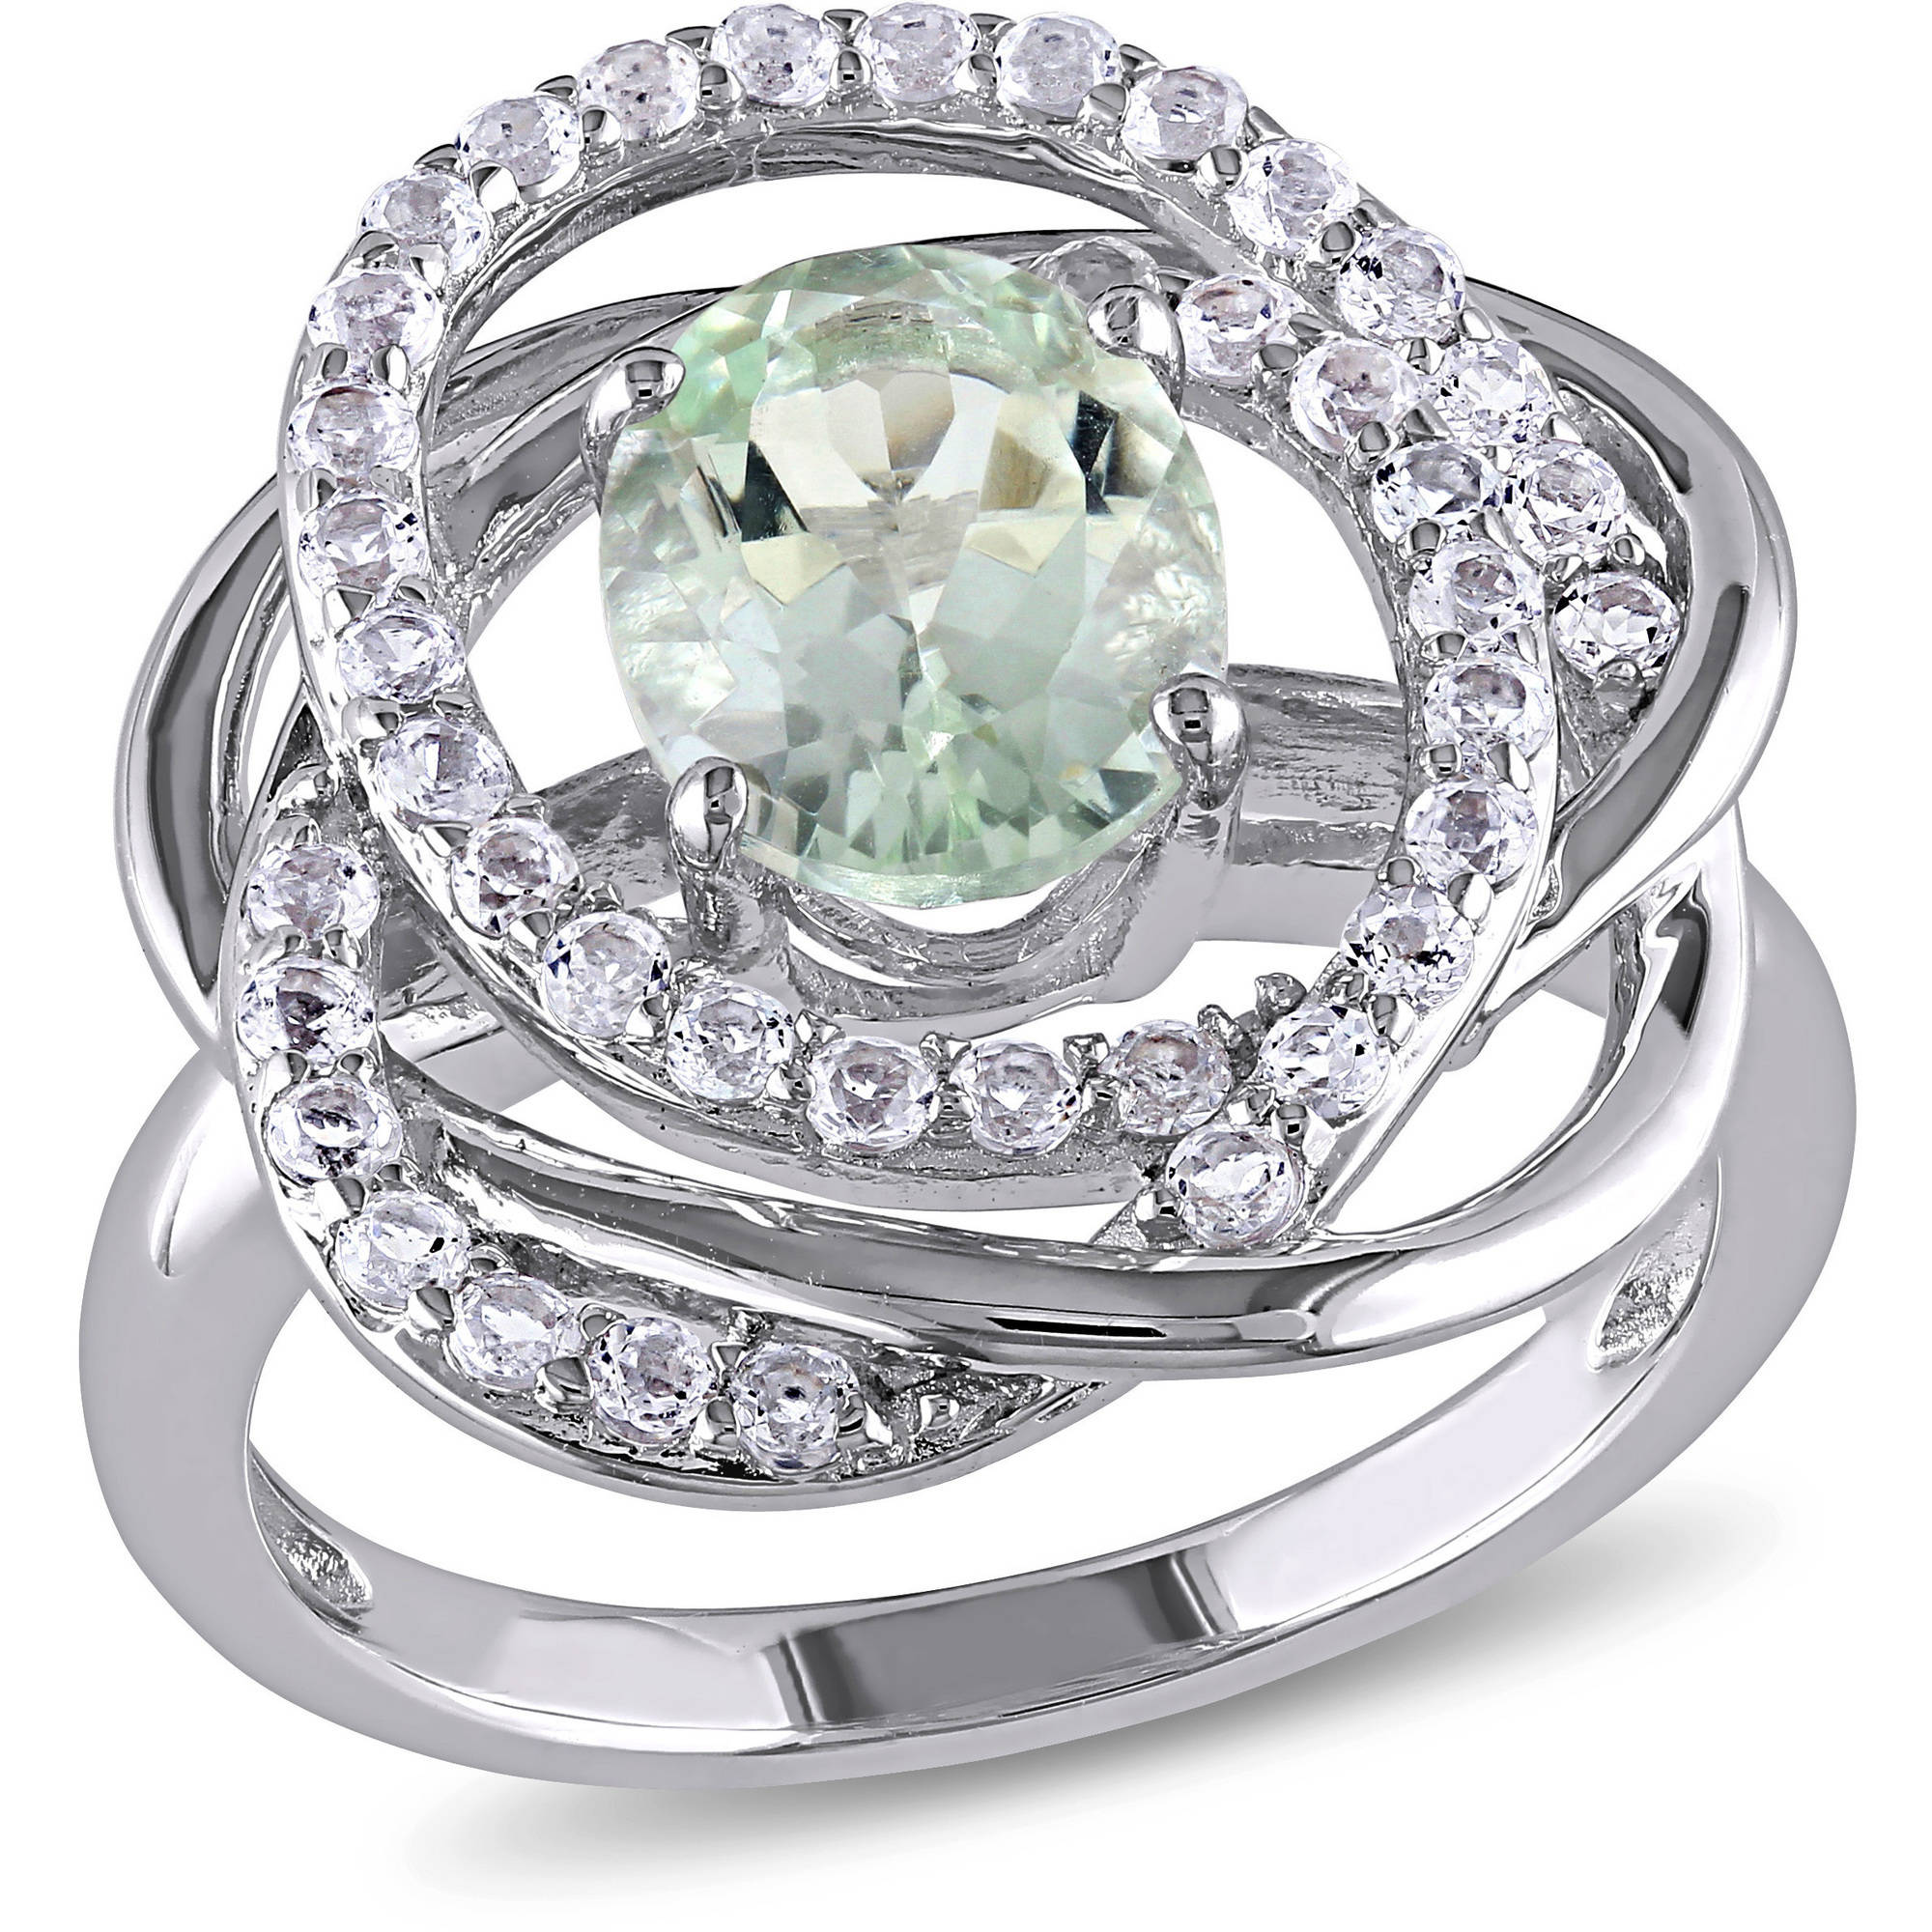 2-7/8 Carat T.G.W. Green Amethyst and White Topaz Sterling Silver Cocktail Ring